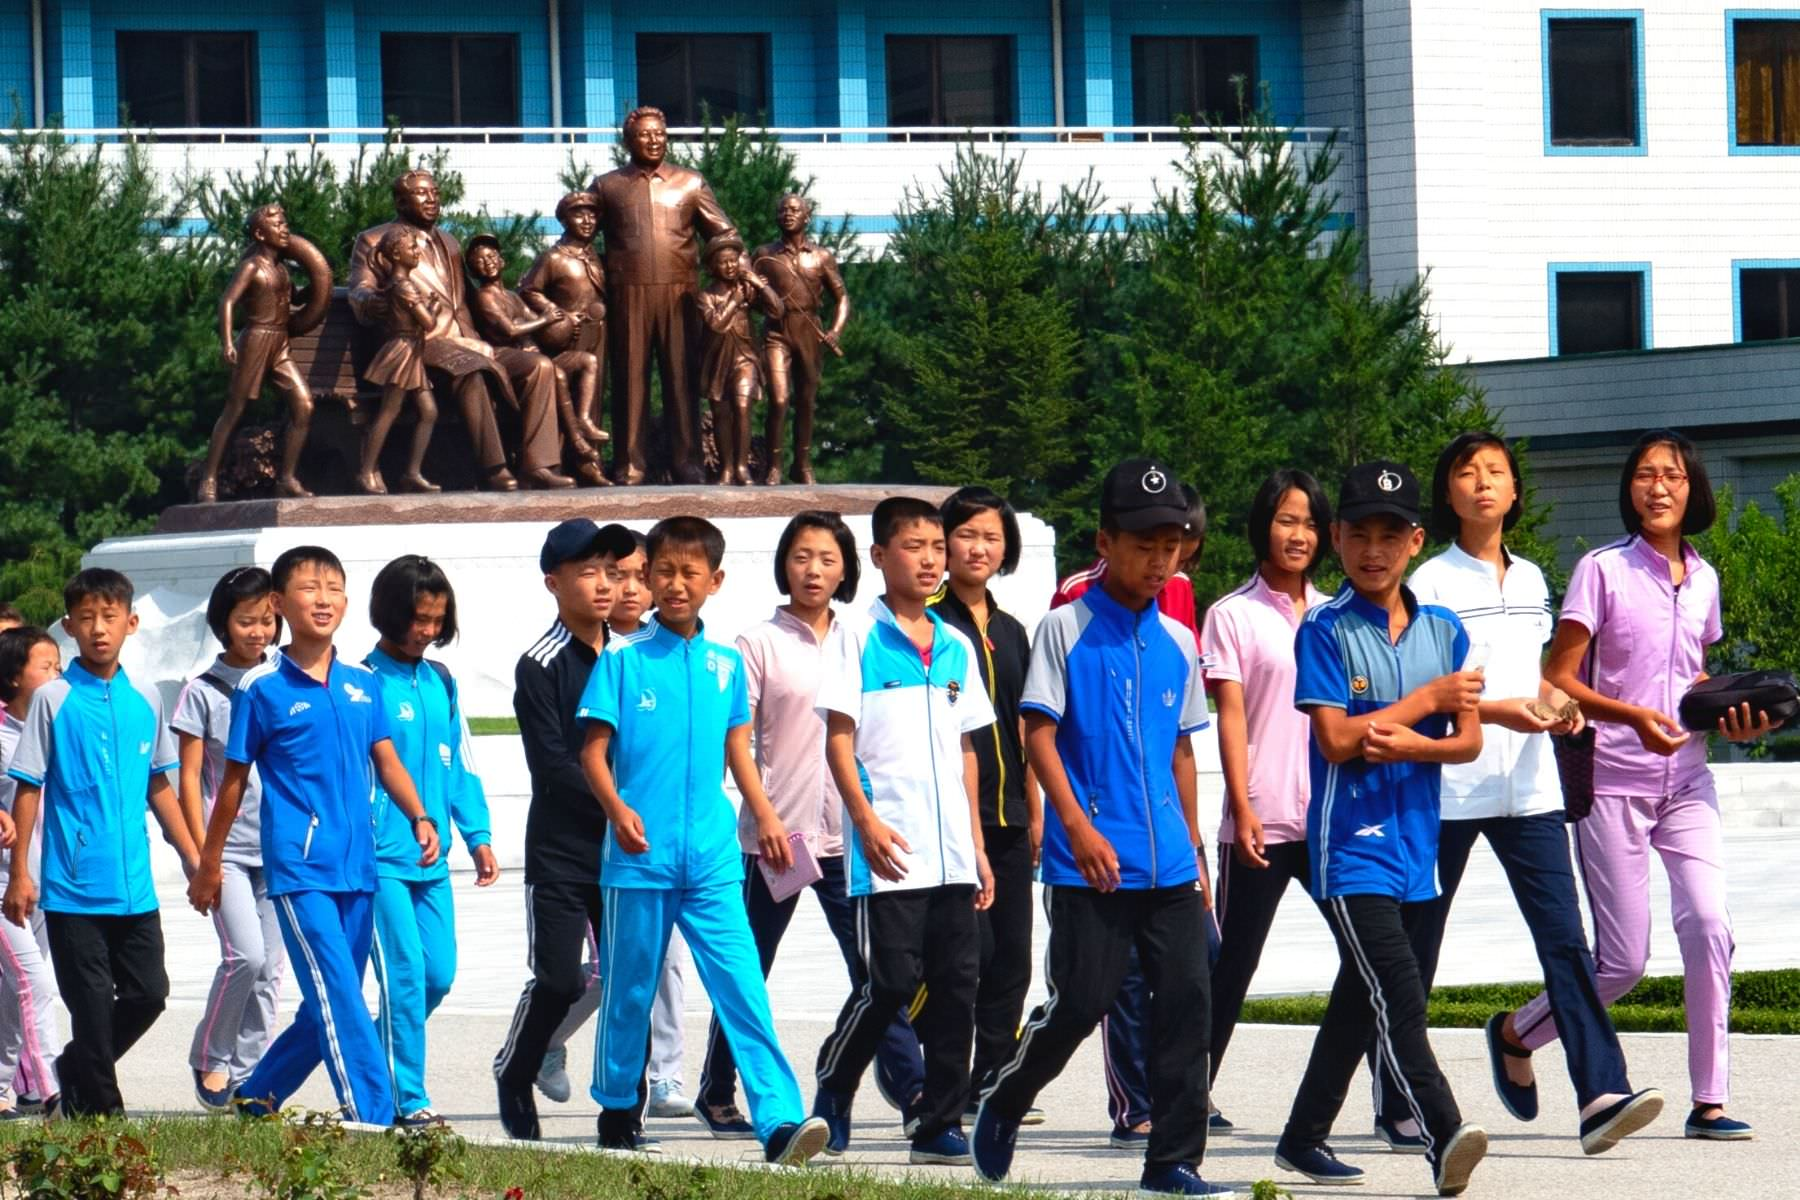 Songdowon Children's Camp in Wonsan, North Korea (DPRK) with KTG Tours